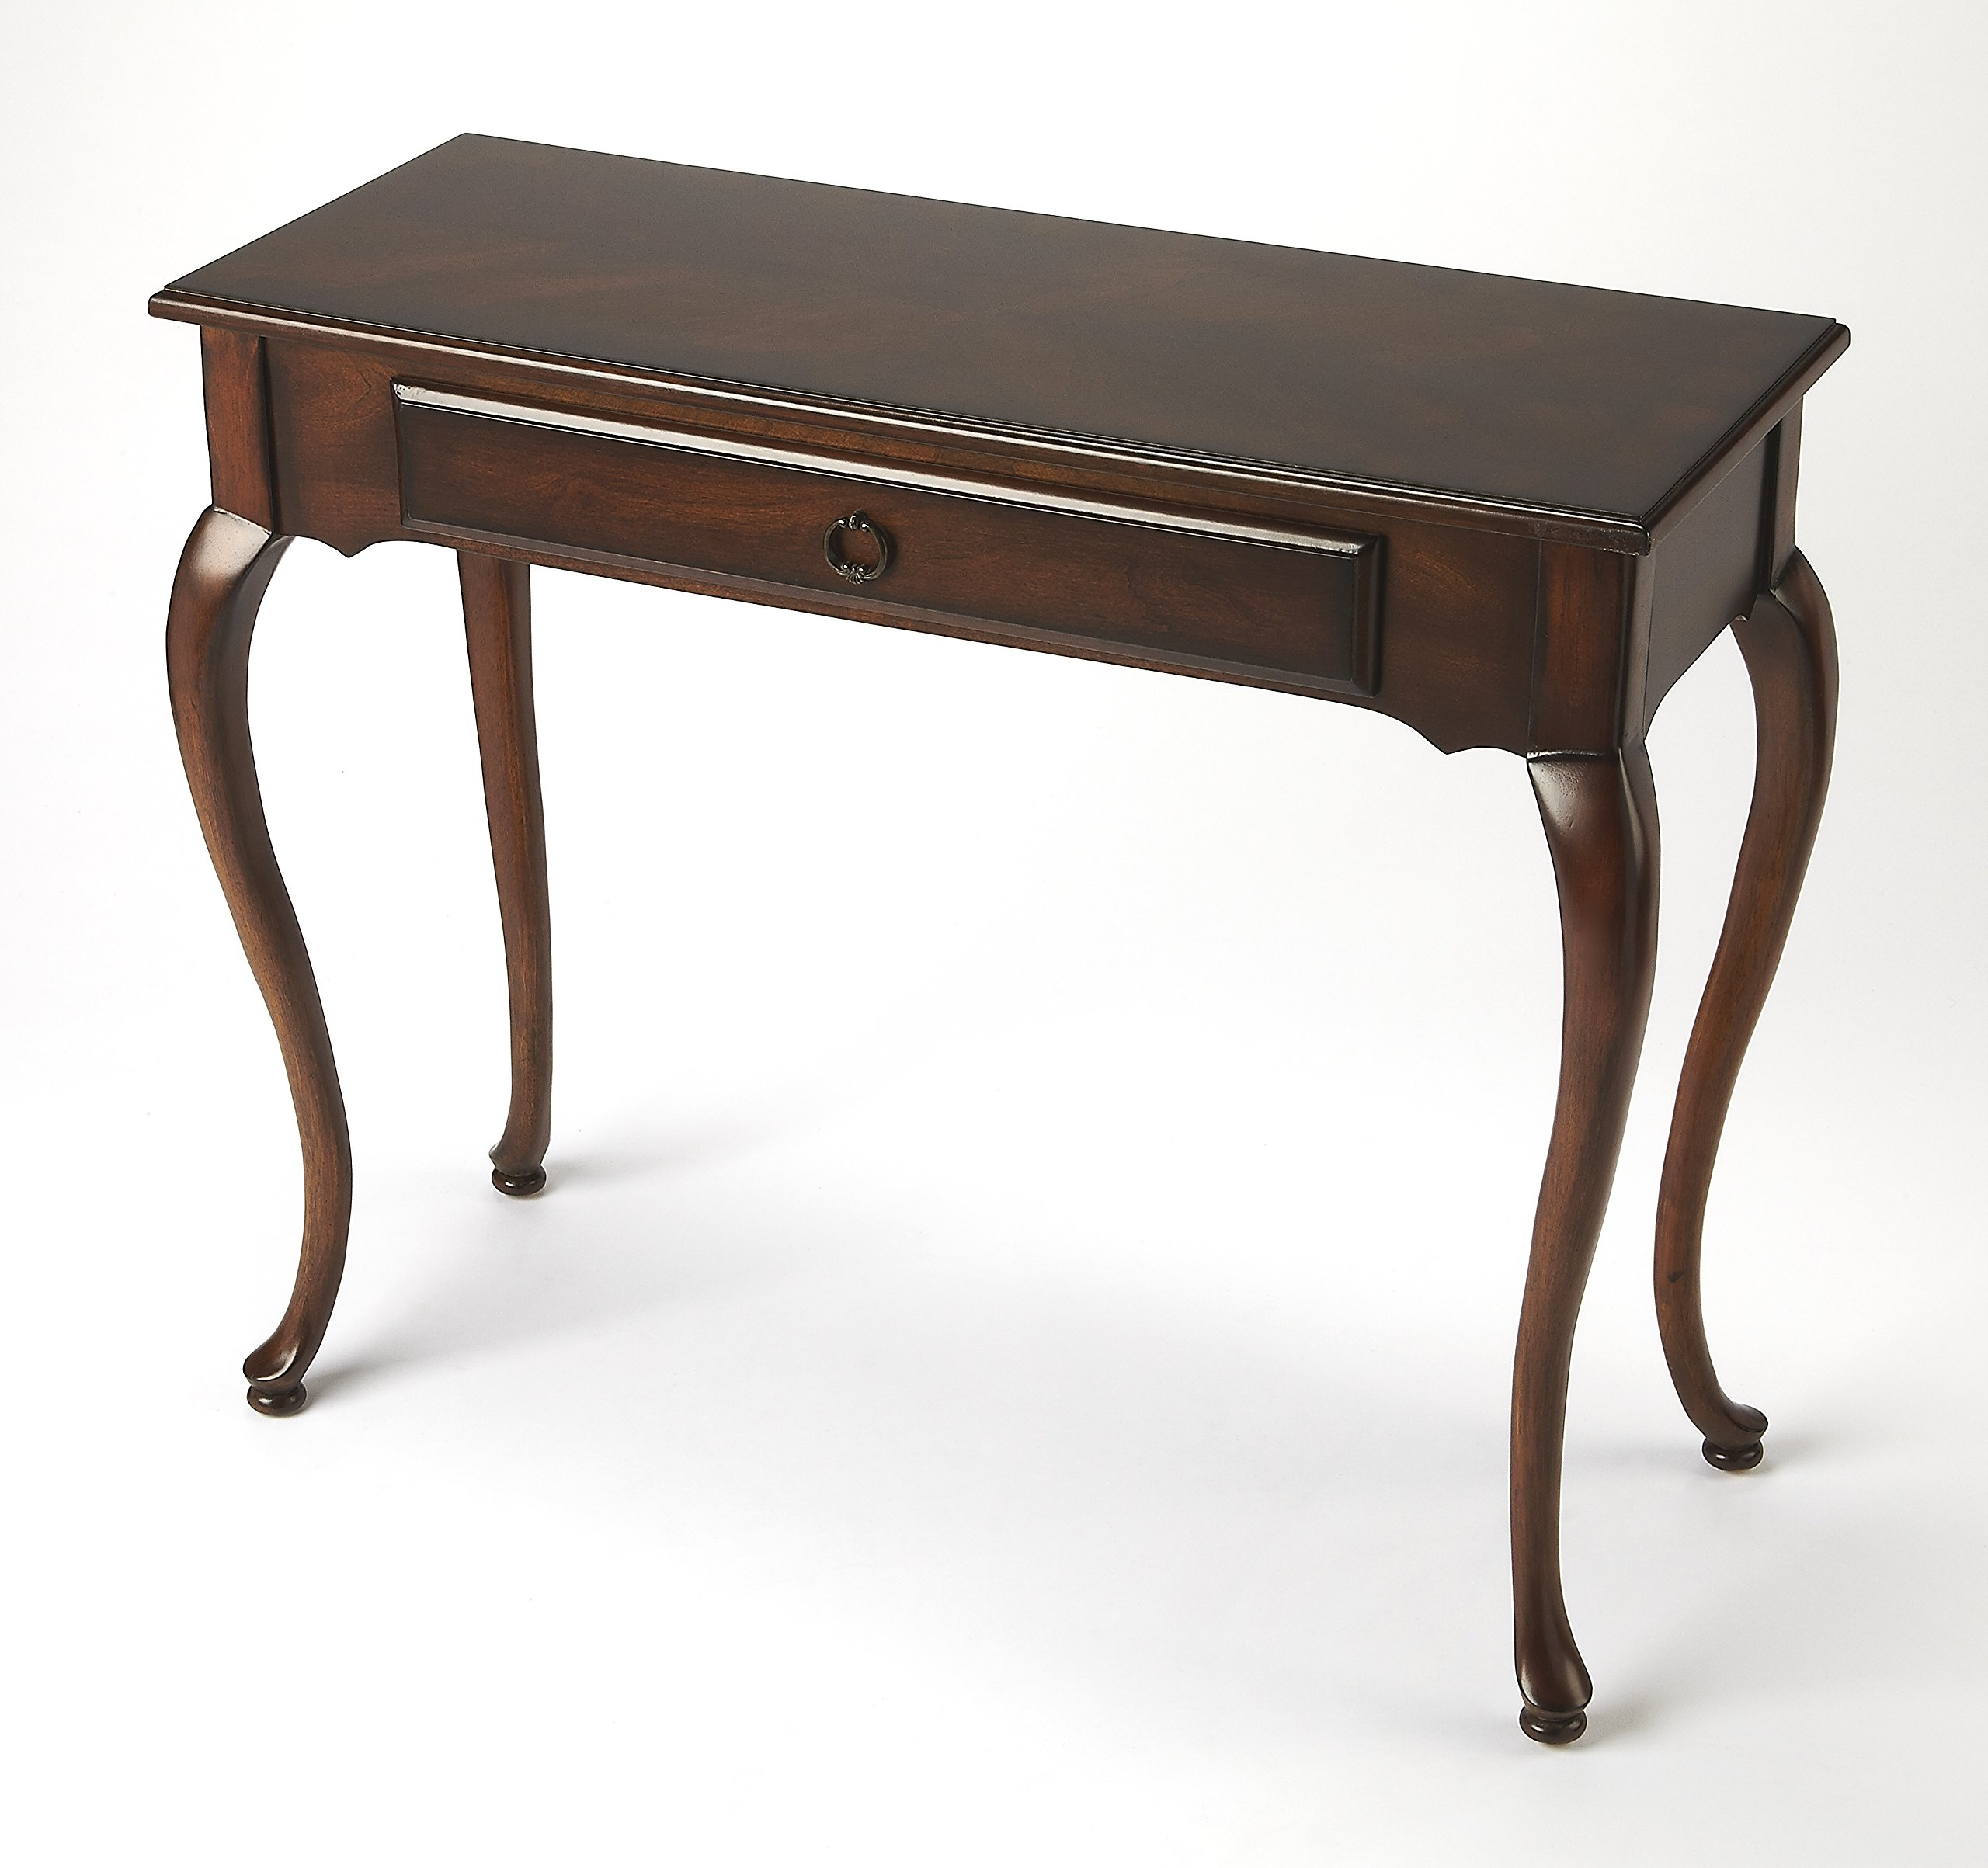 WOYBR 3747024 Console Table